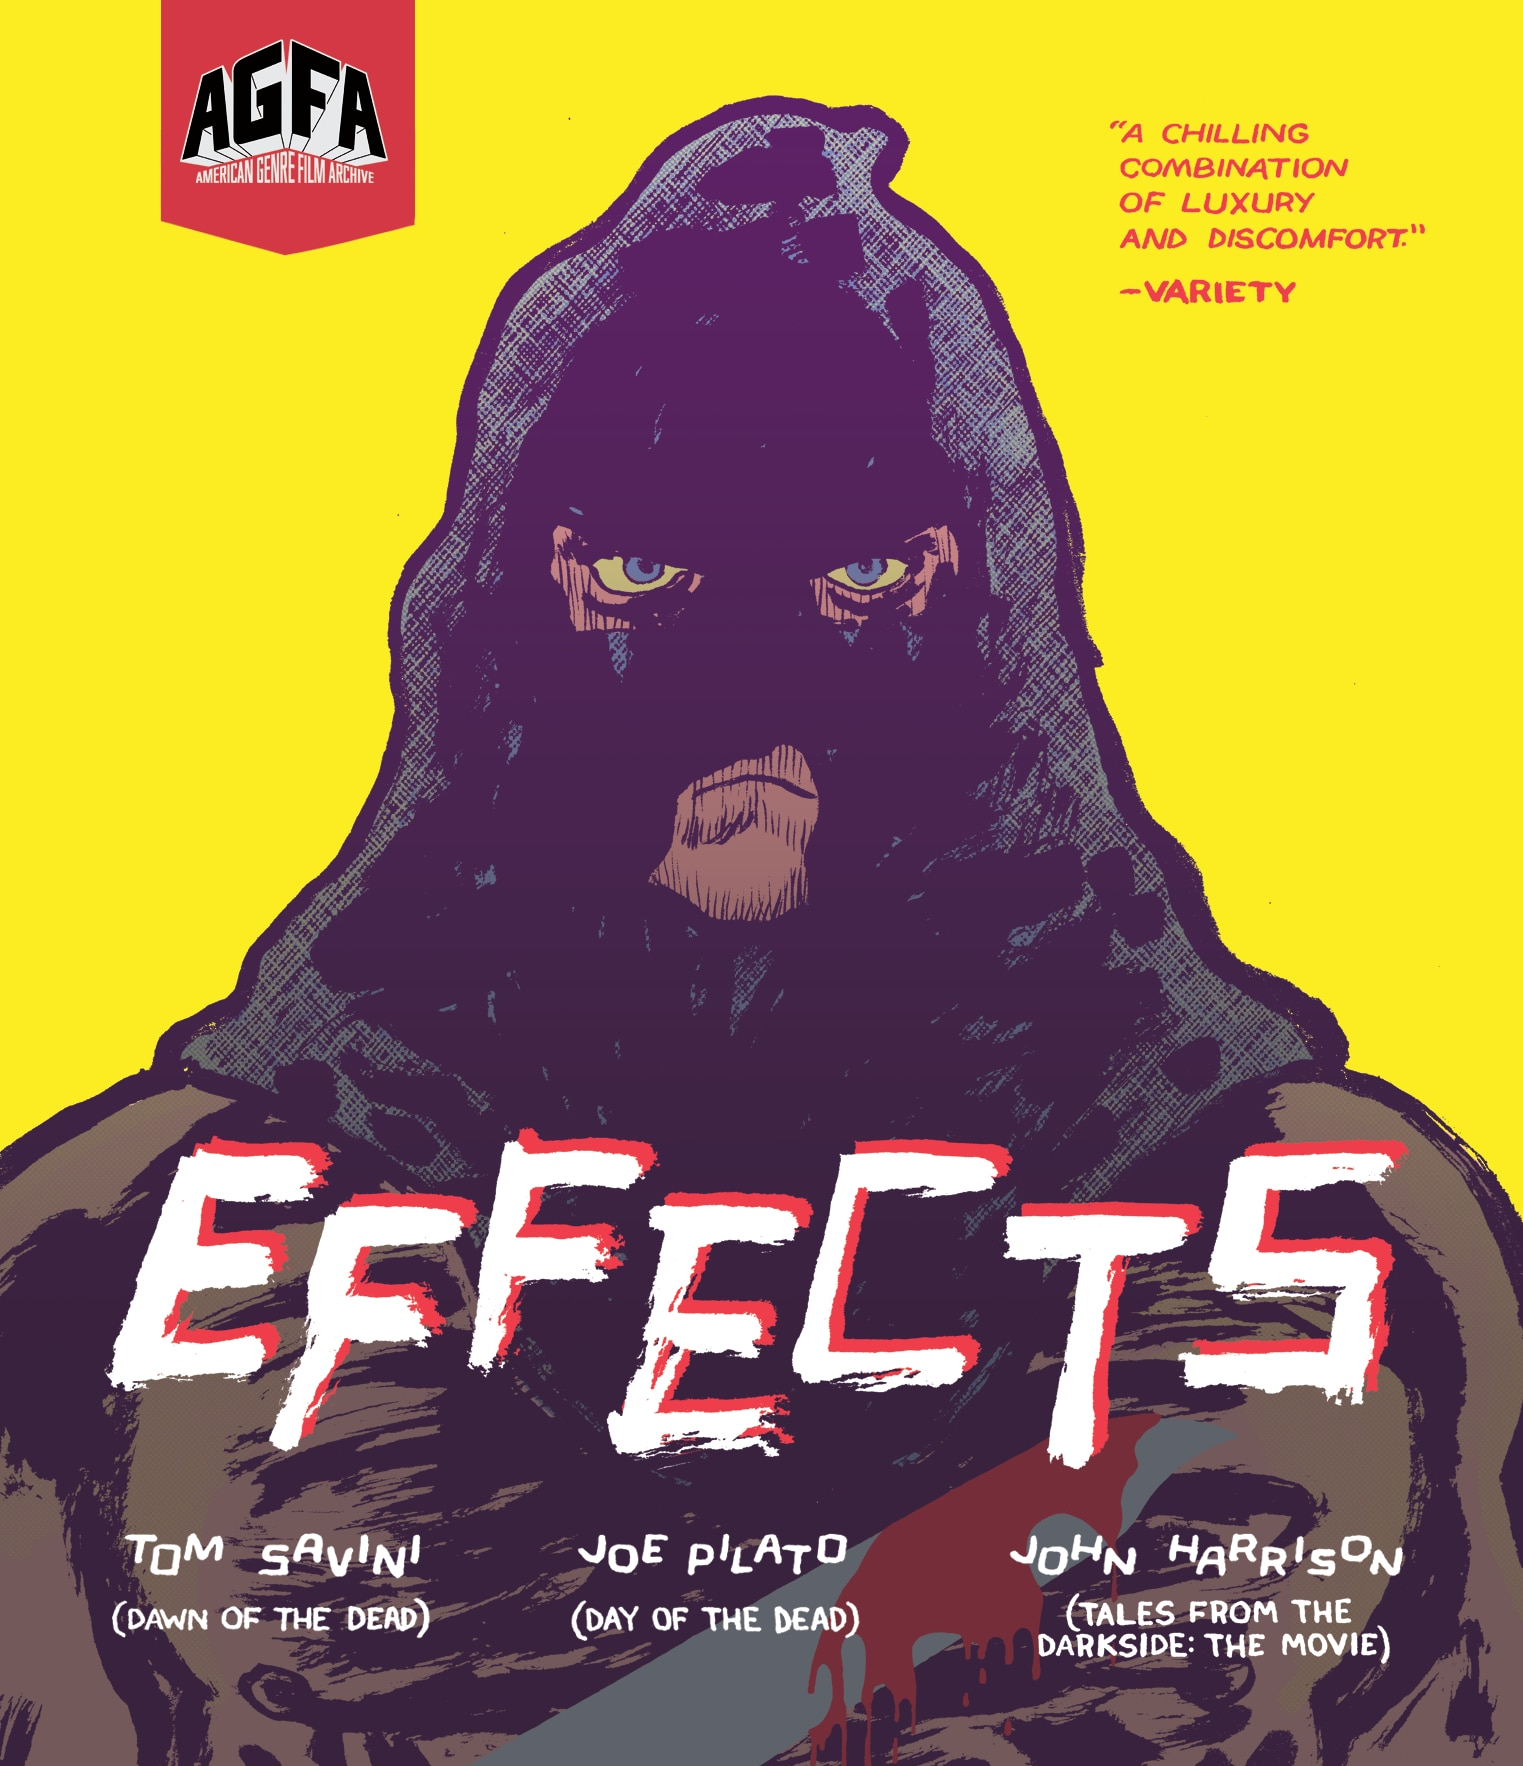 AGFA Effects Cover 1 - Effects, Also Known as The Manipulator, Is Getting a 4K Blu-ray Release